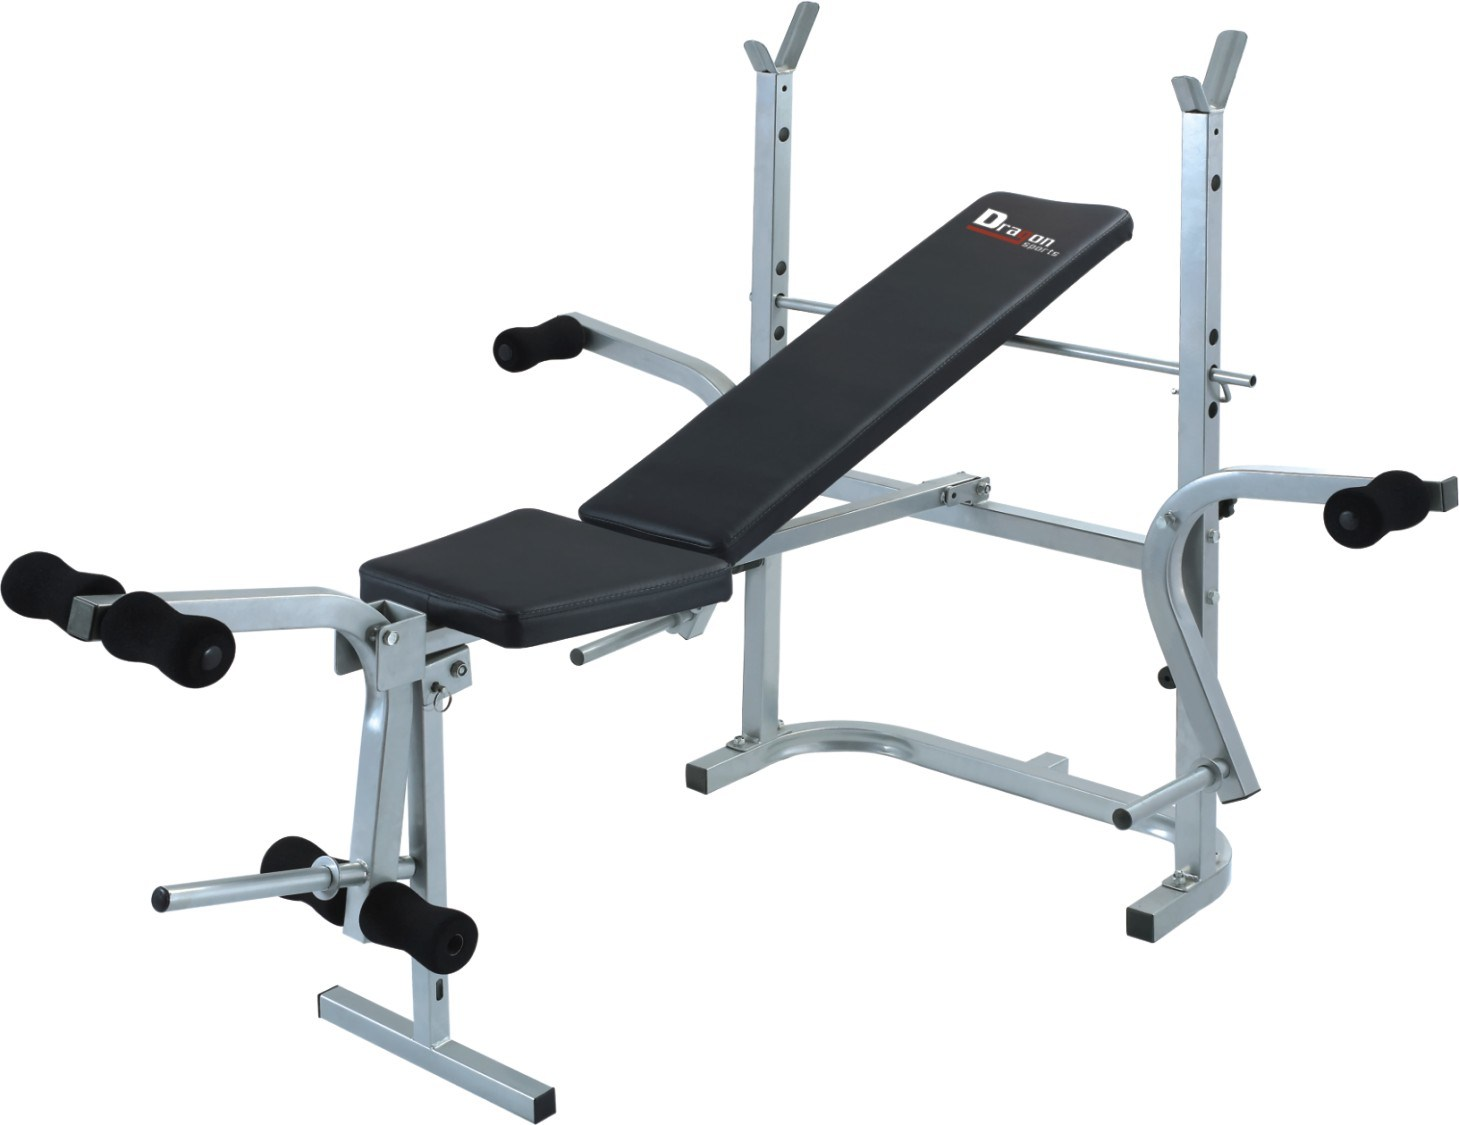 Exercise Bench For Sale In 28 Images Unused Exercise Bench For Sale Fitness 63606596 Object